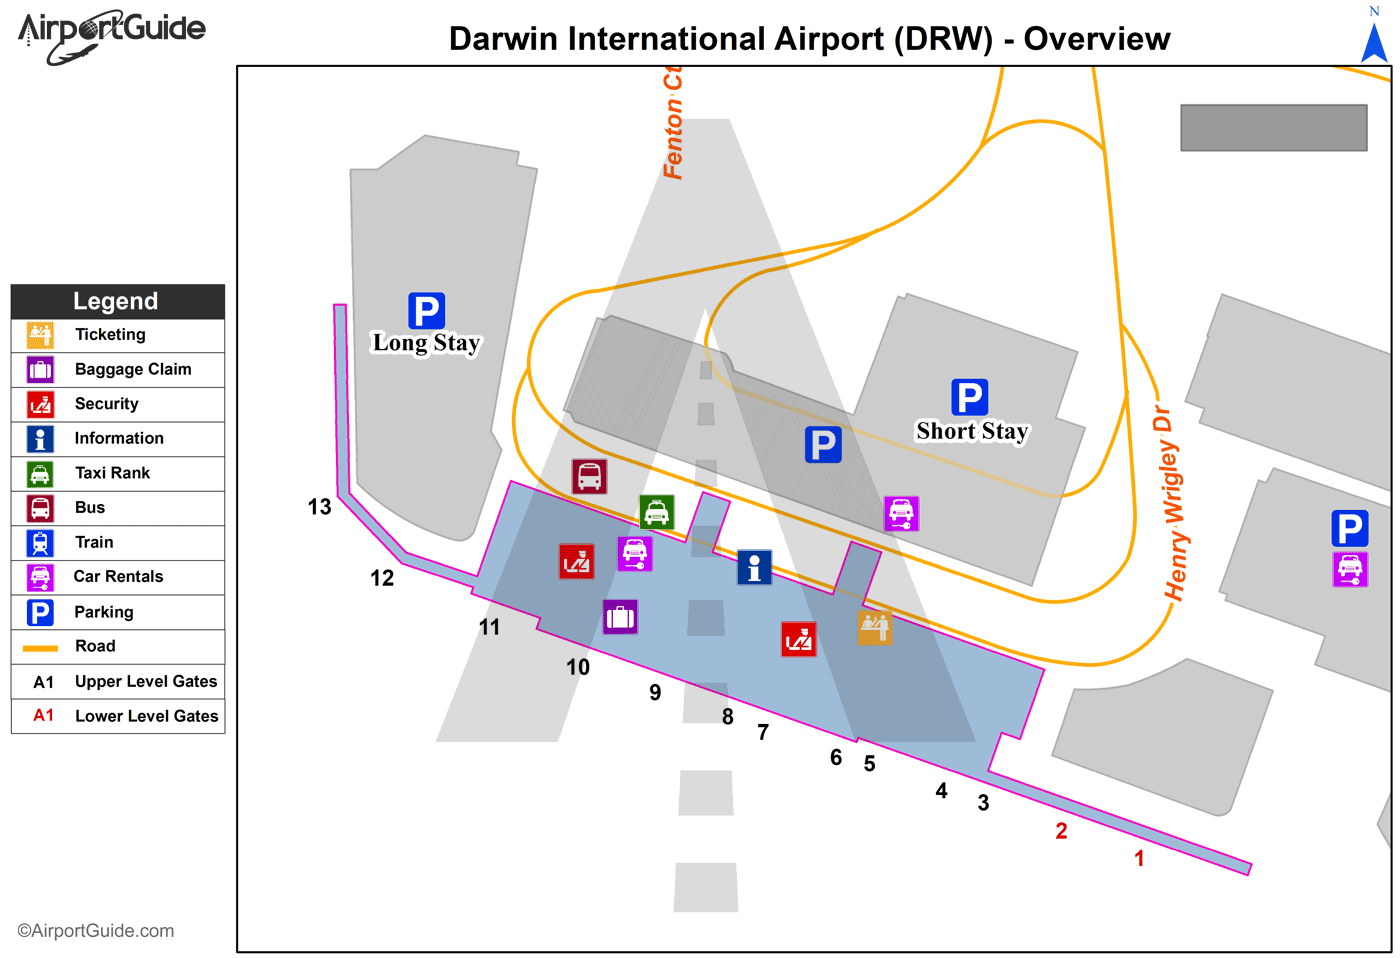 Darwin - Darwin International (DRW) Airport Terminal Map - Overview